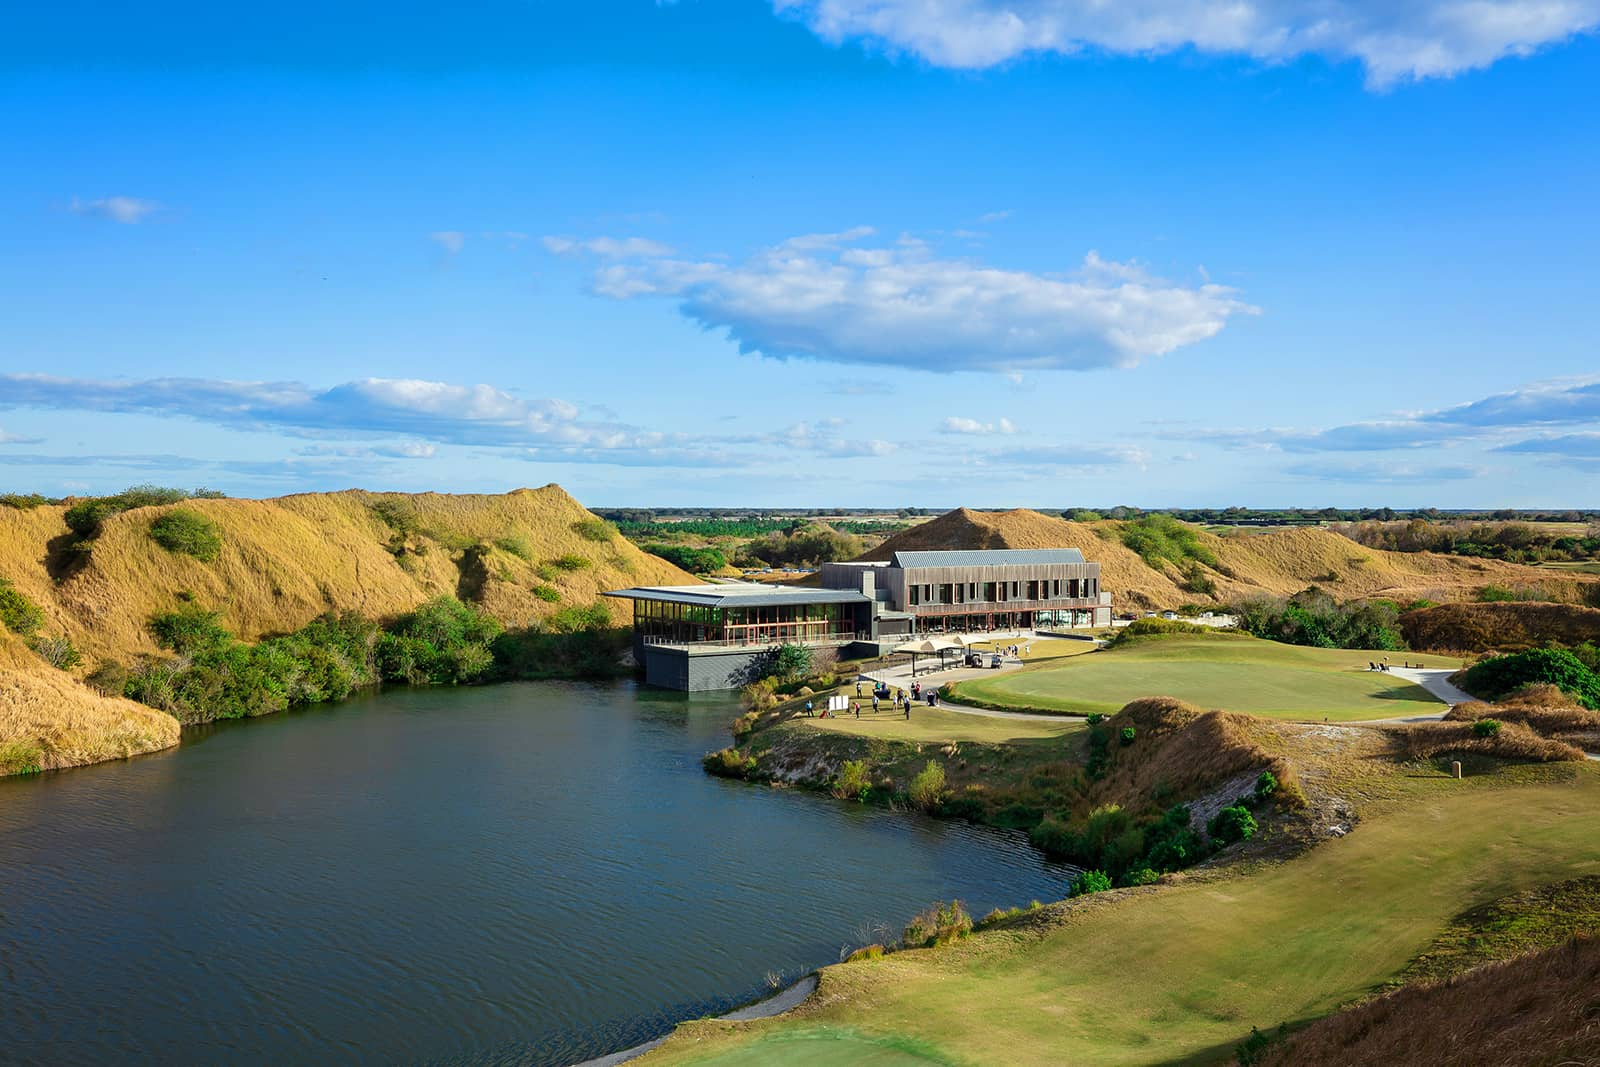 Golf Events at Streamsong